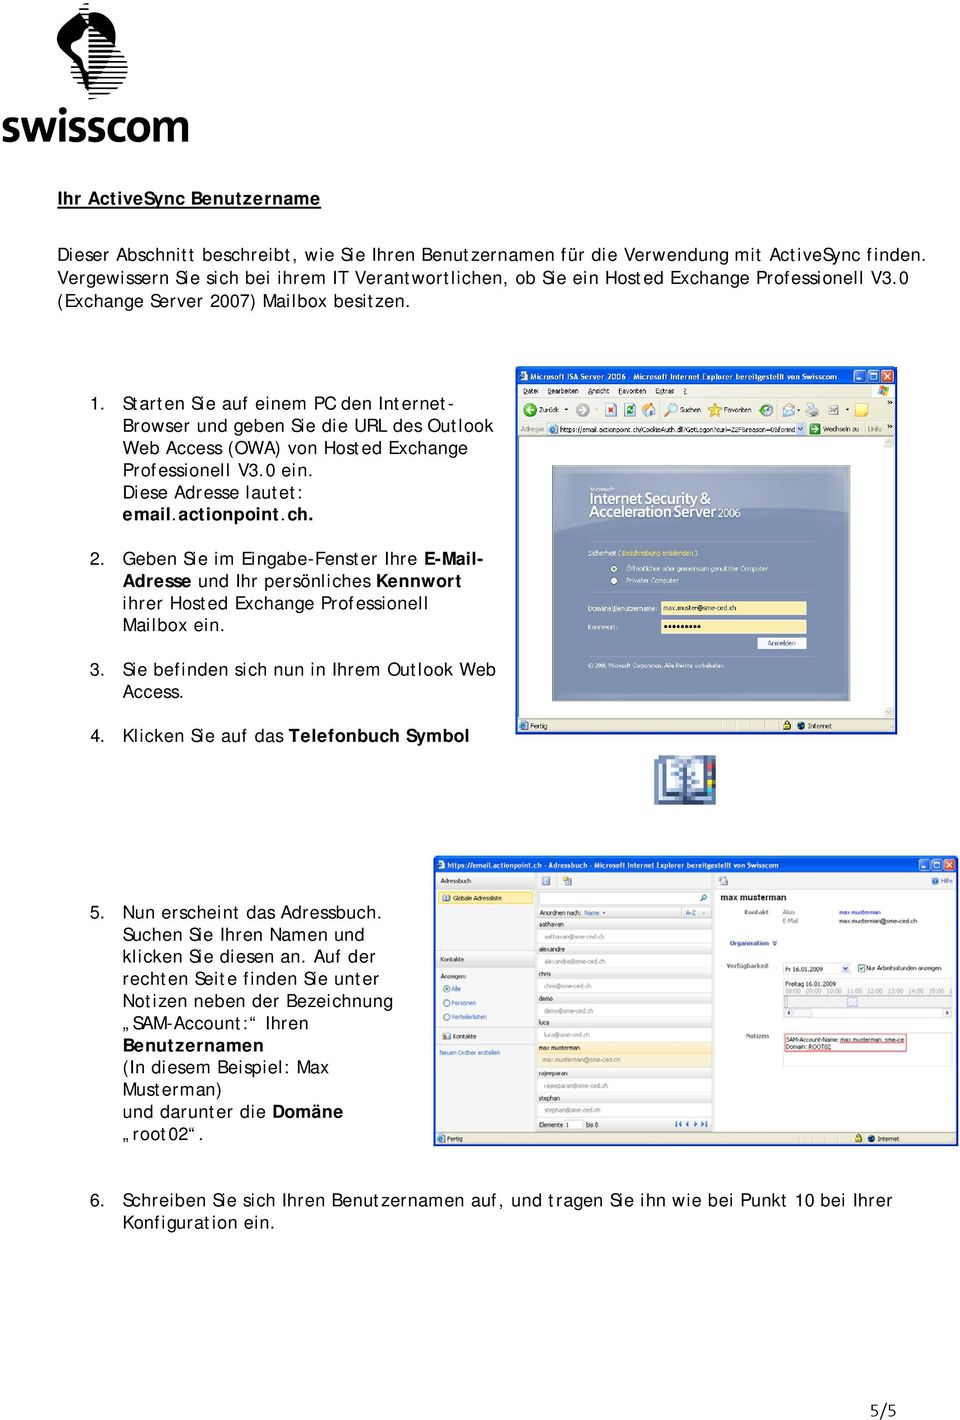 Starten Sie auf einem PC den Internet- Browser und geben Sie die URL des Outlook Web Access (OWA) von Hosted Exchange Professionell V3.0 ein. Diese Adresse lautet: email.actionpoint.ch. 2.